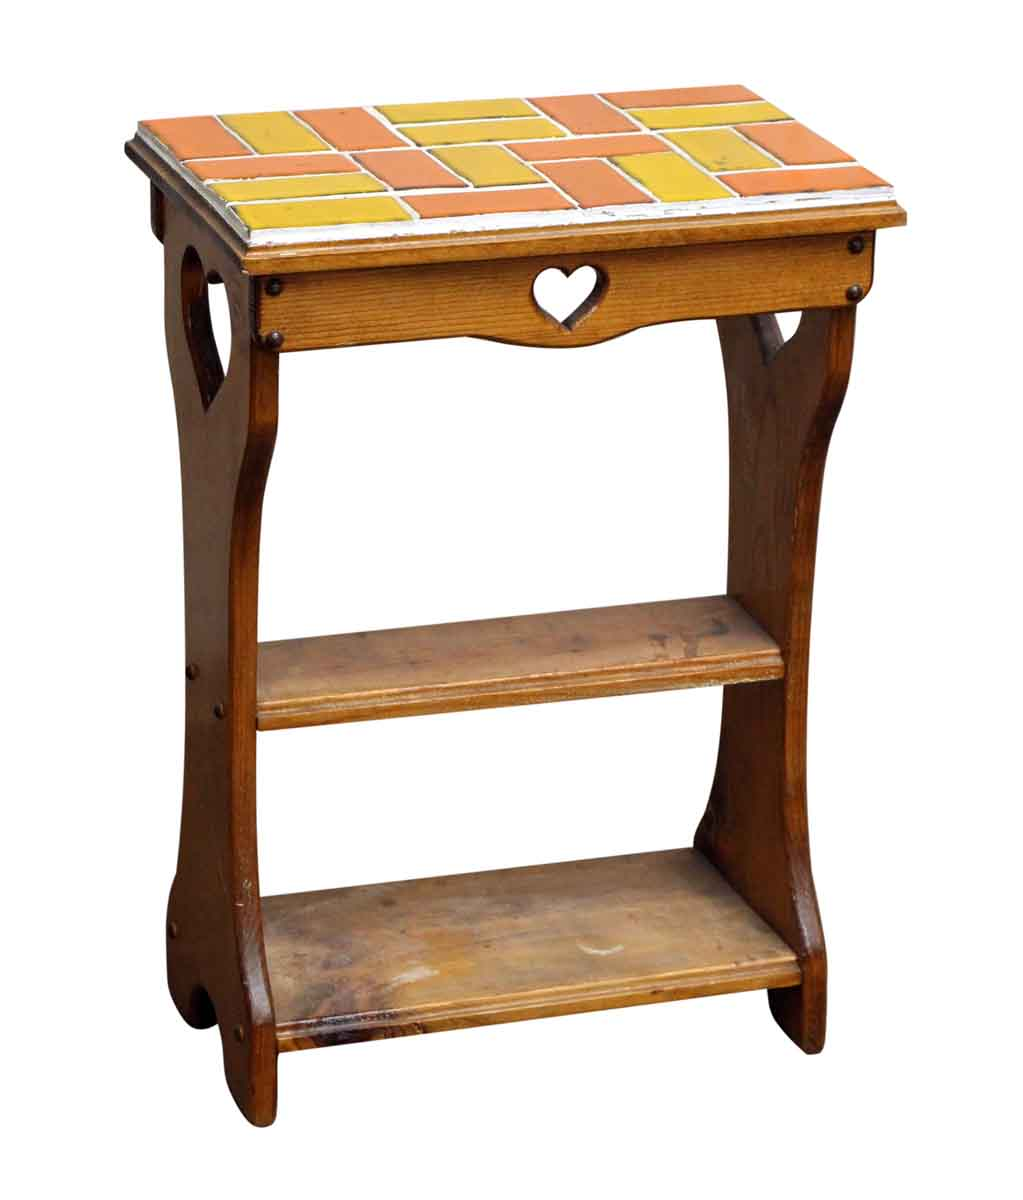 end table with heart cut outs and colorful tile top olde ashley accent tables teal colored wedding registry ideas rolling tool cabinet home furniture comfy garden unfinished wood